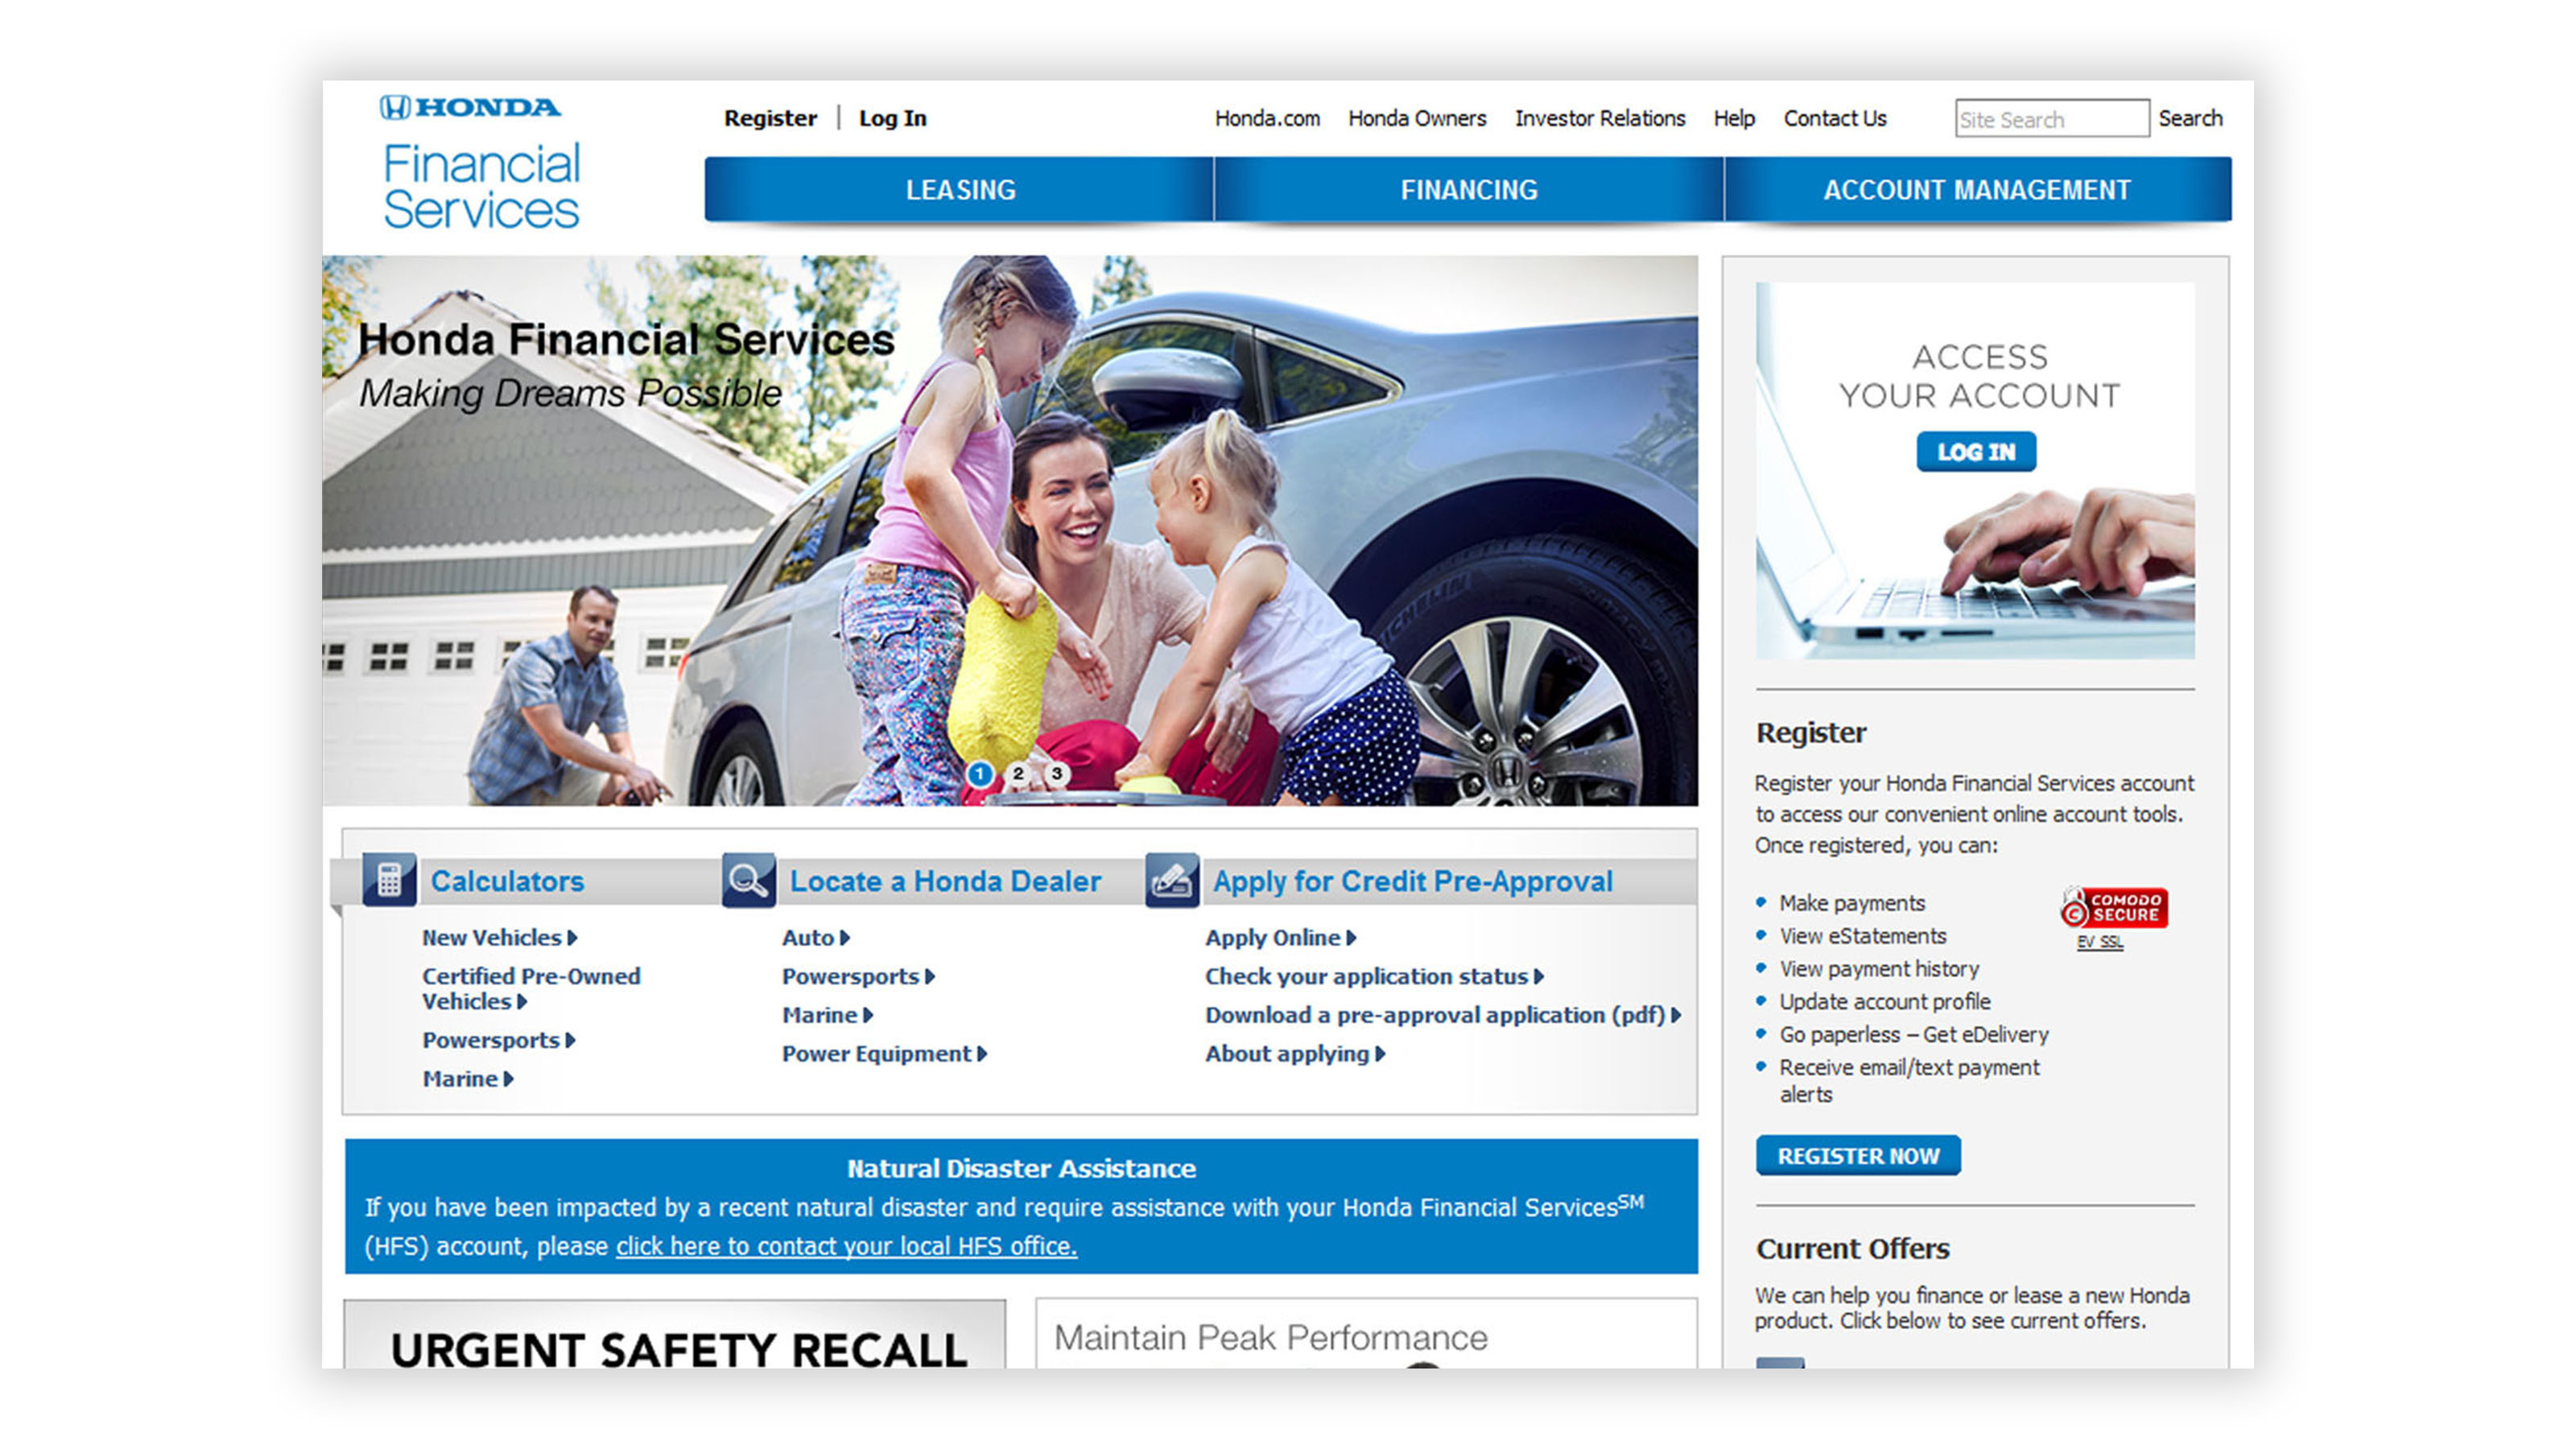 Honda financial services website